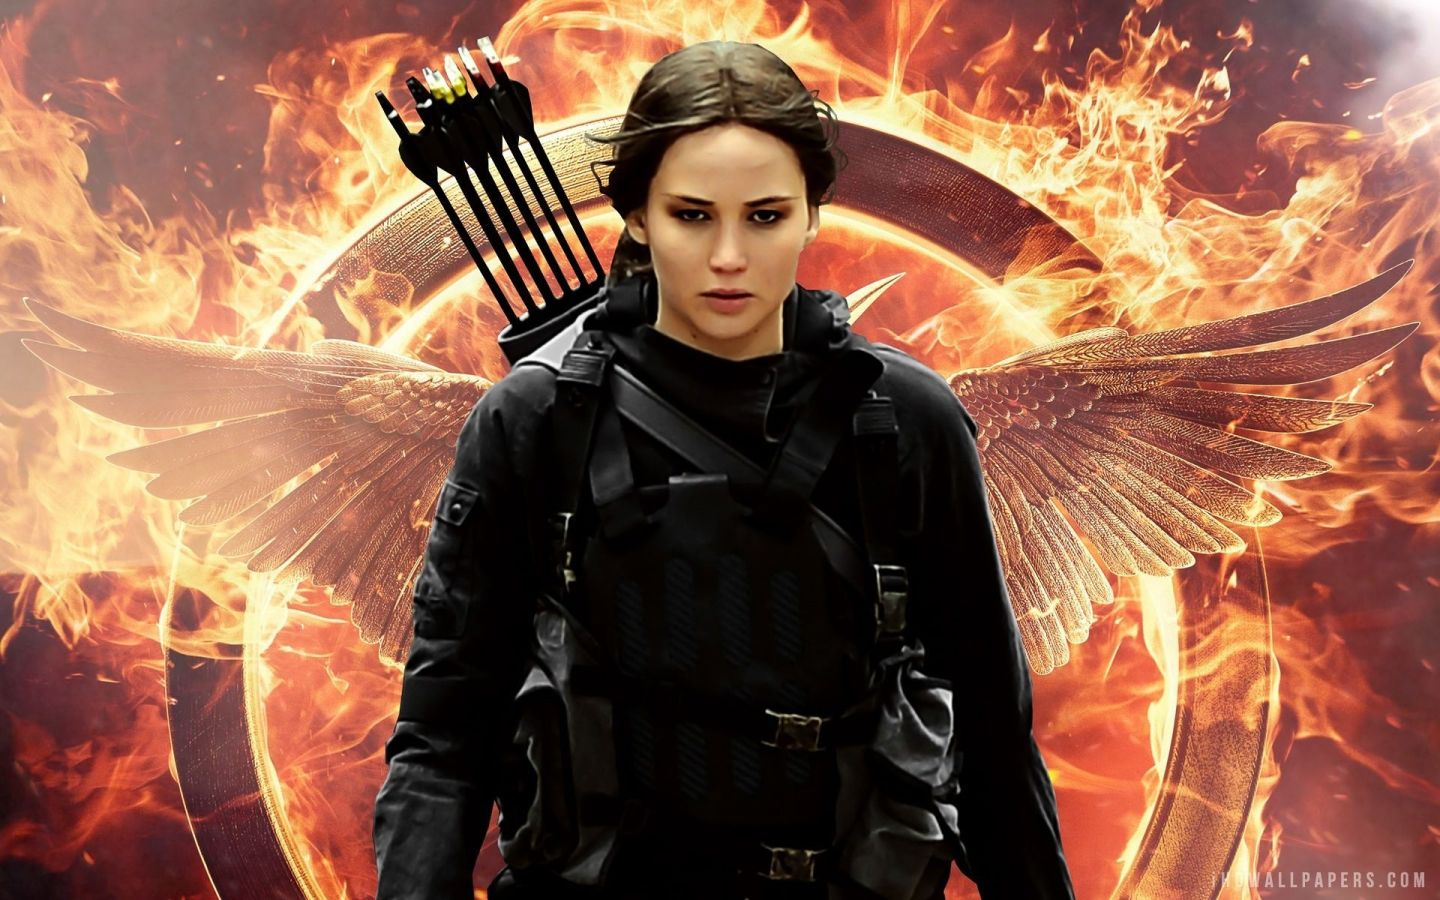 Hunger Games MOCKINGJAY Part 2 (2015) movie review